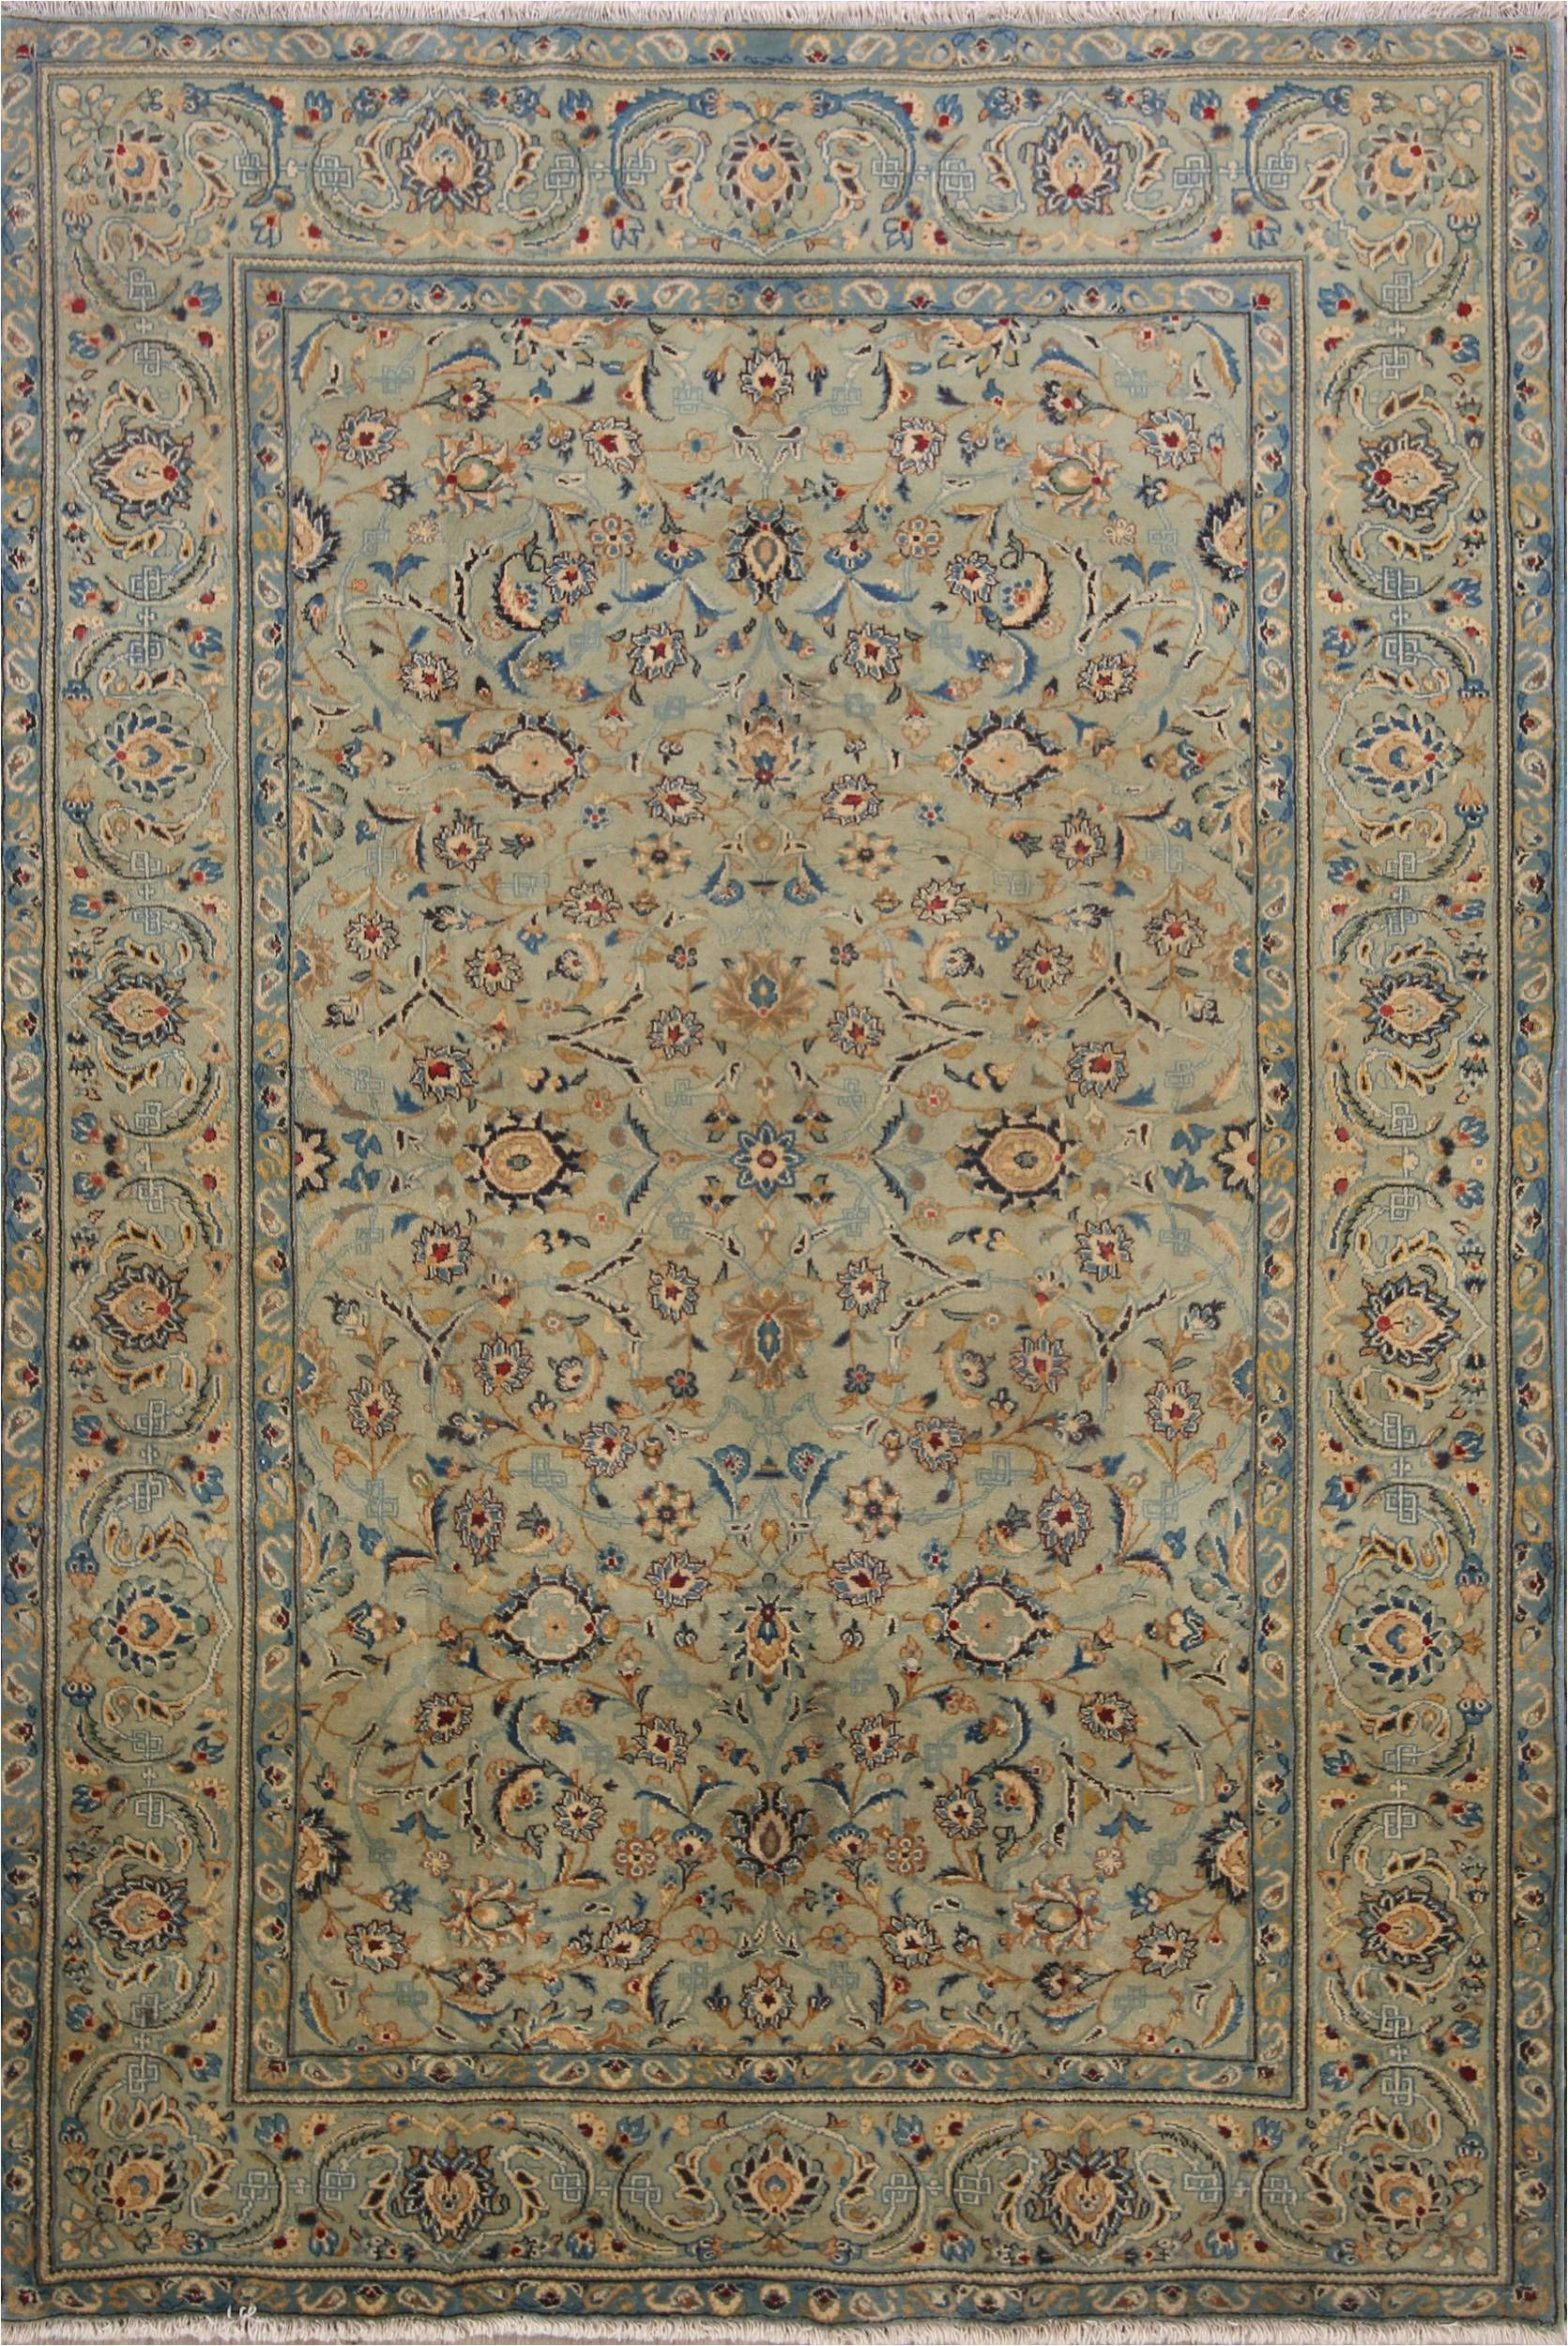 Sage Green area Rug 5x7 All Over Floral Sage Green Kashan Persian area Rug 5x7